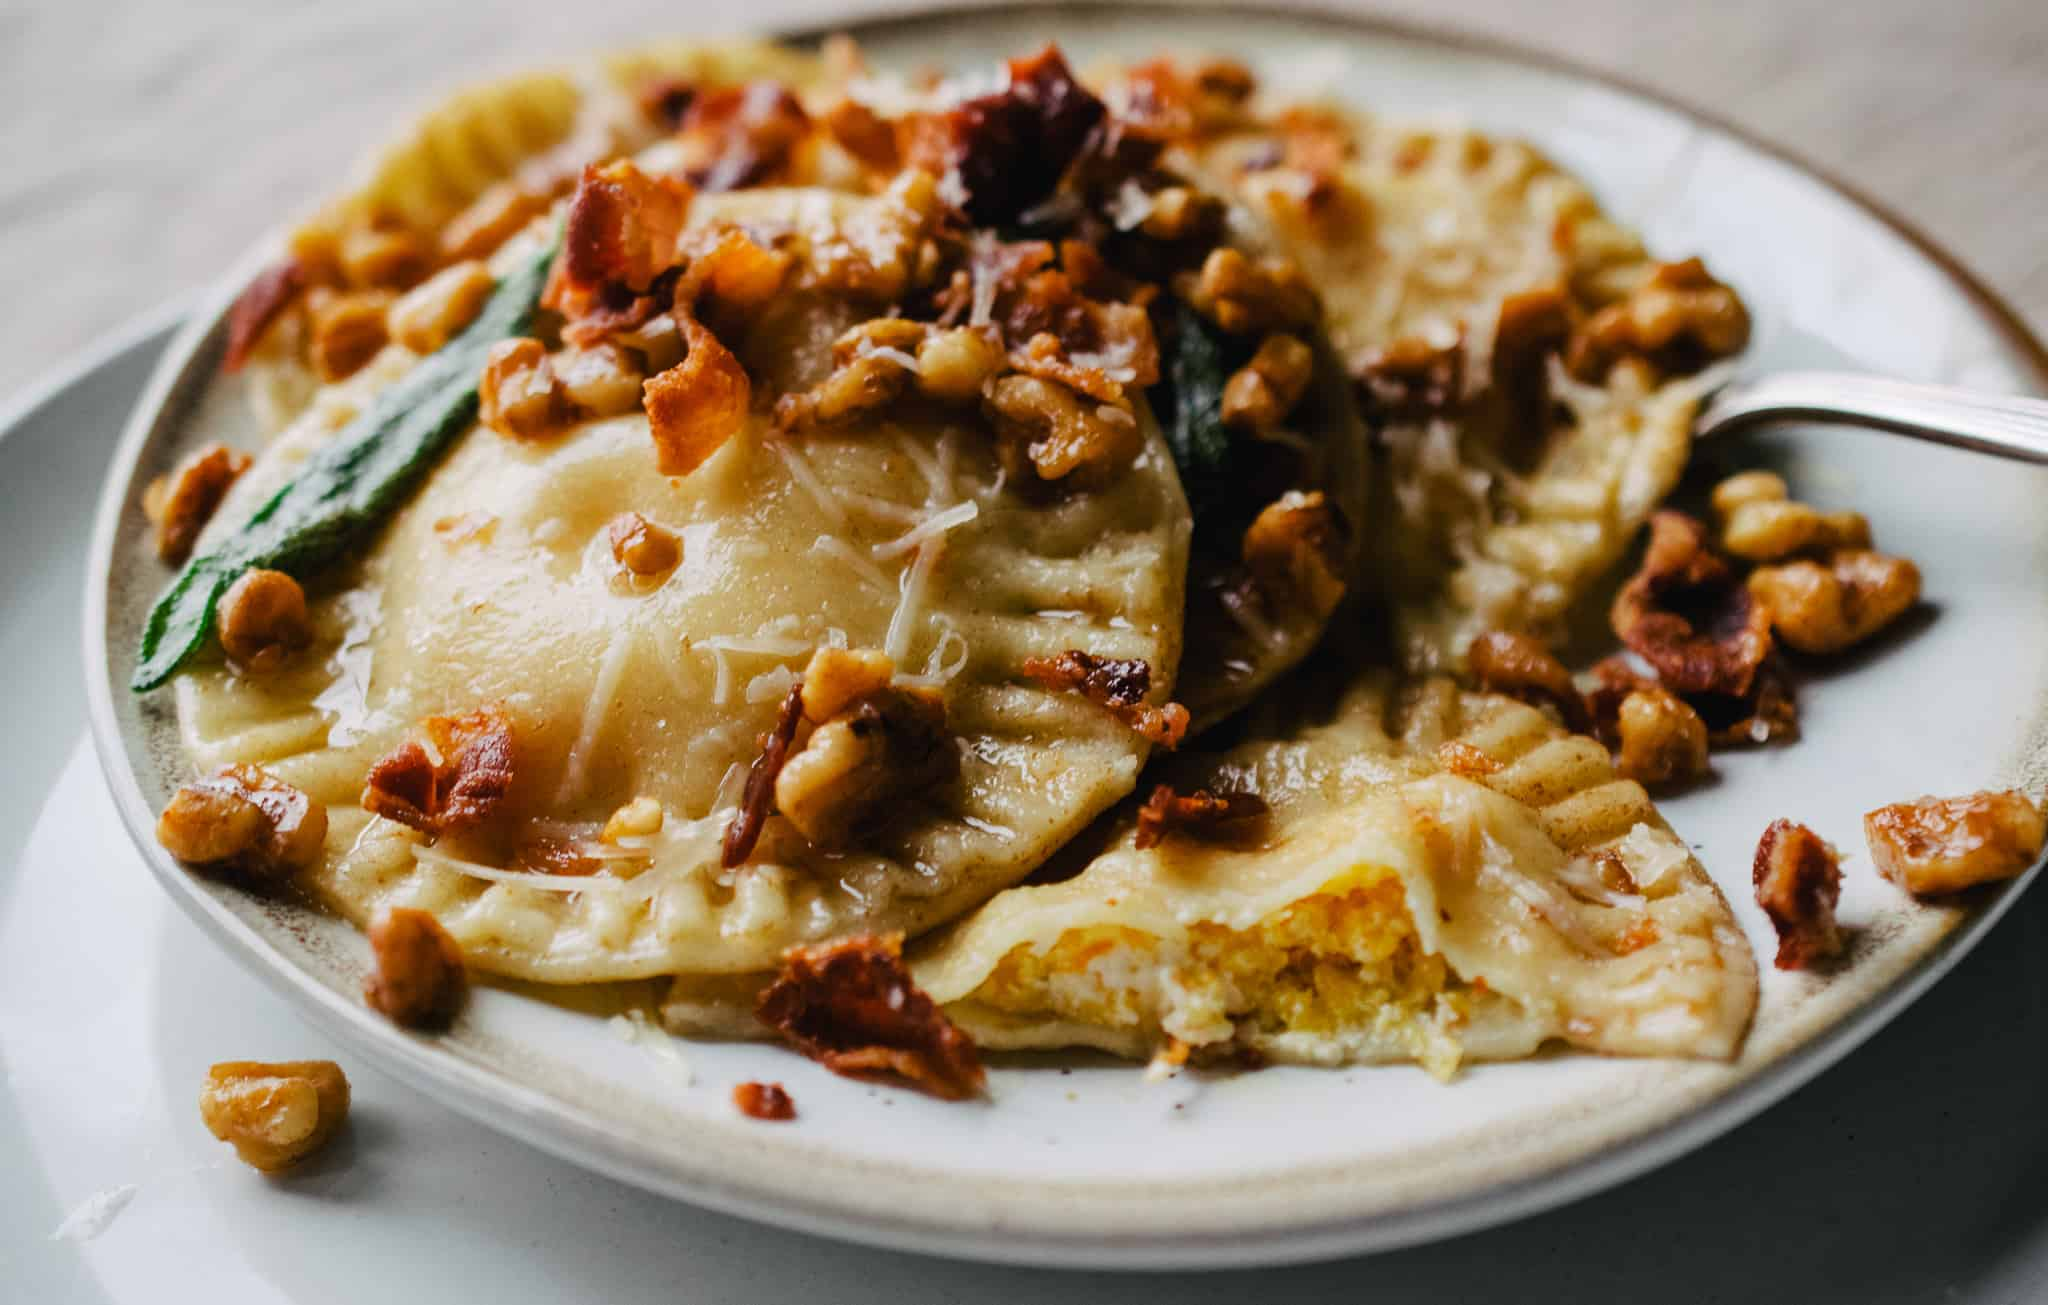 stoneware plate of butternut squash handmade ravioli with fried sage and walnuts on linen tablecloth